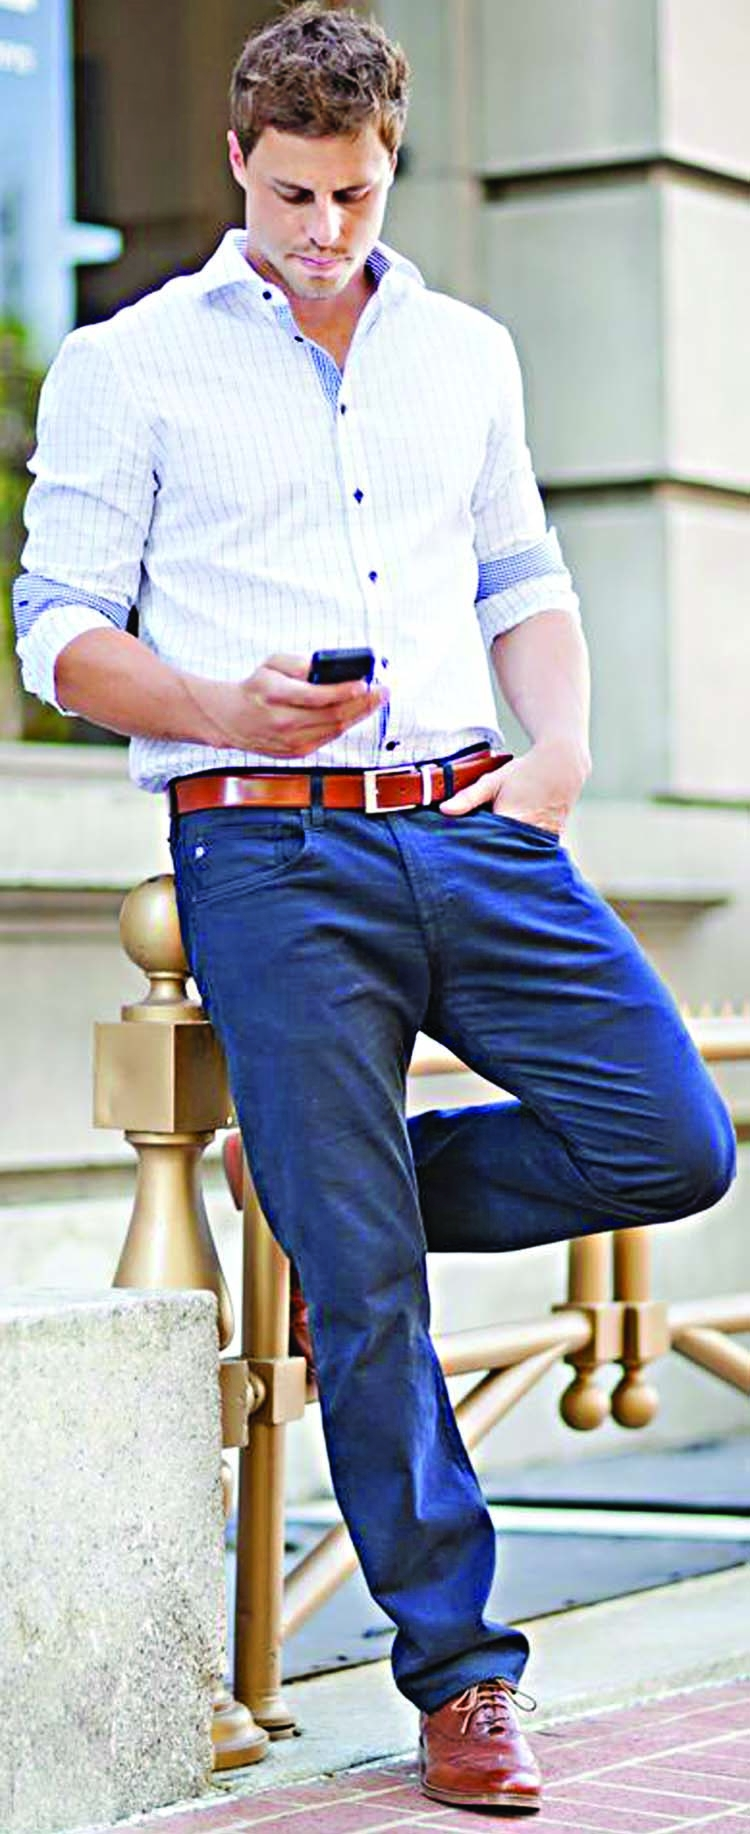 Tips for men to look work-ready